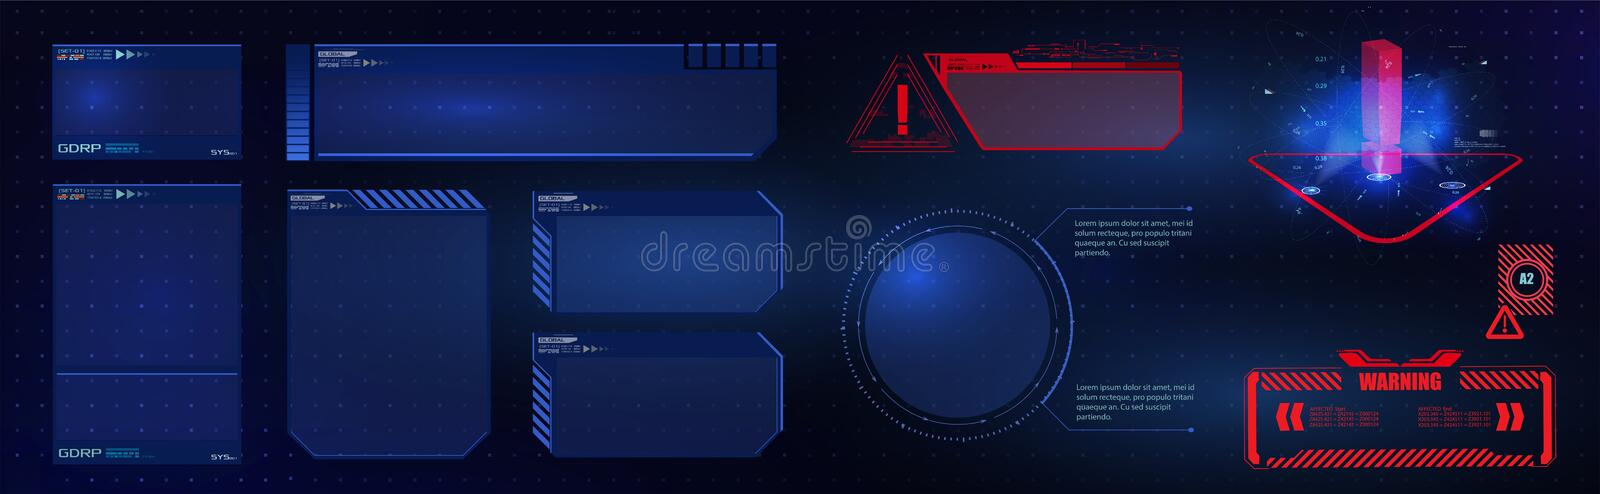 HUD UI GUI  futuristic user interface screen elements set. High tech screen for video game. Sci-fi concept design. royalty free illustration